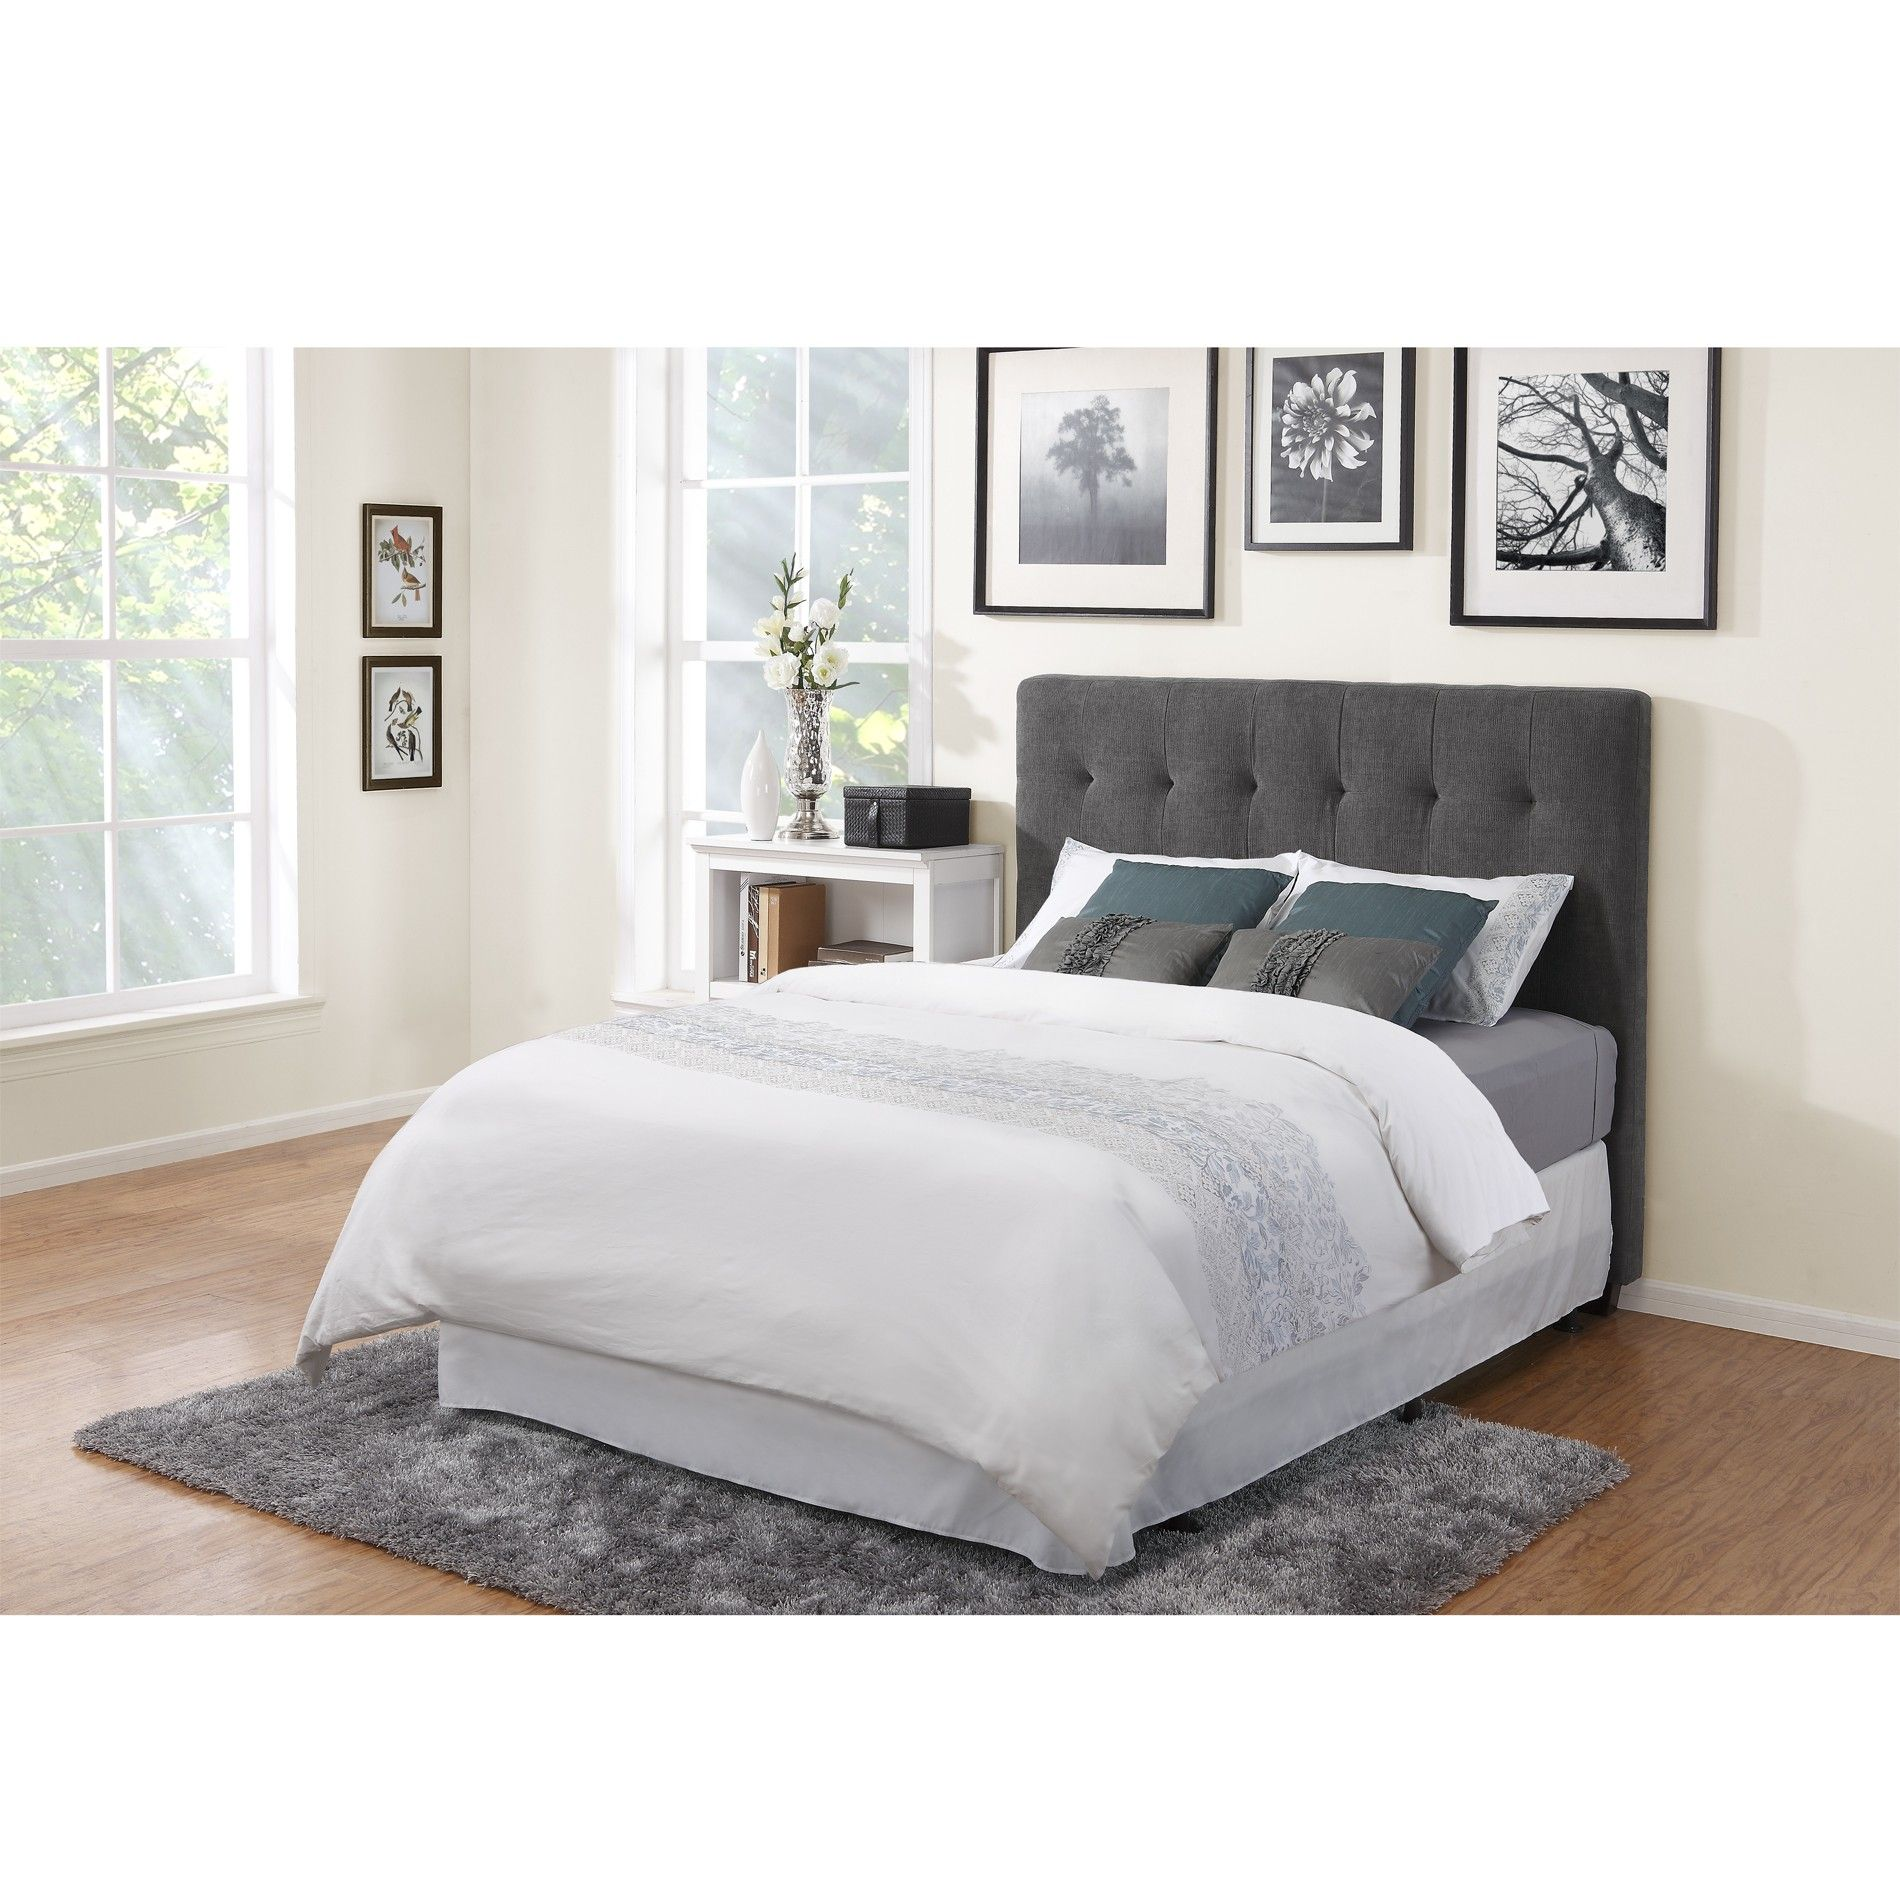 Cool Upholstered Headboards For Stylish Bed Decor Grey Nailheads